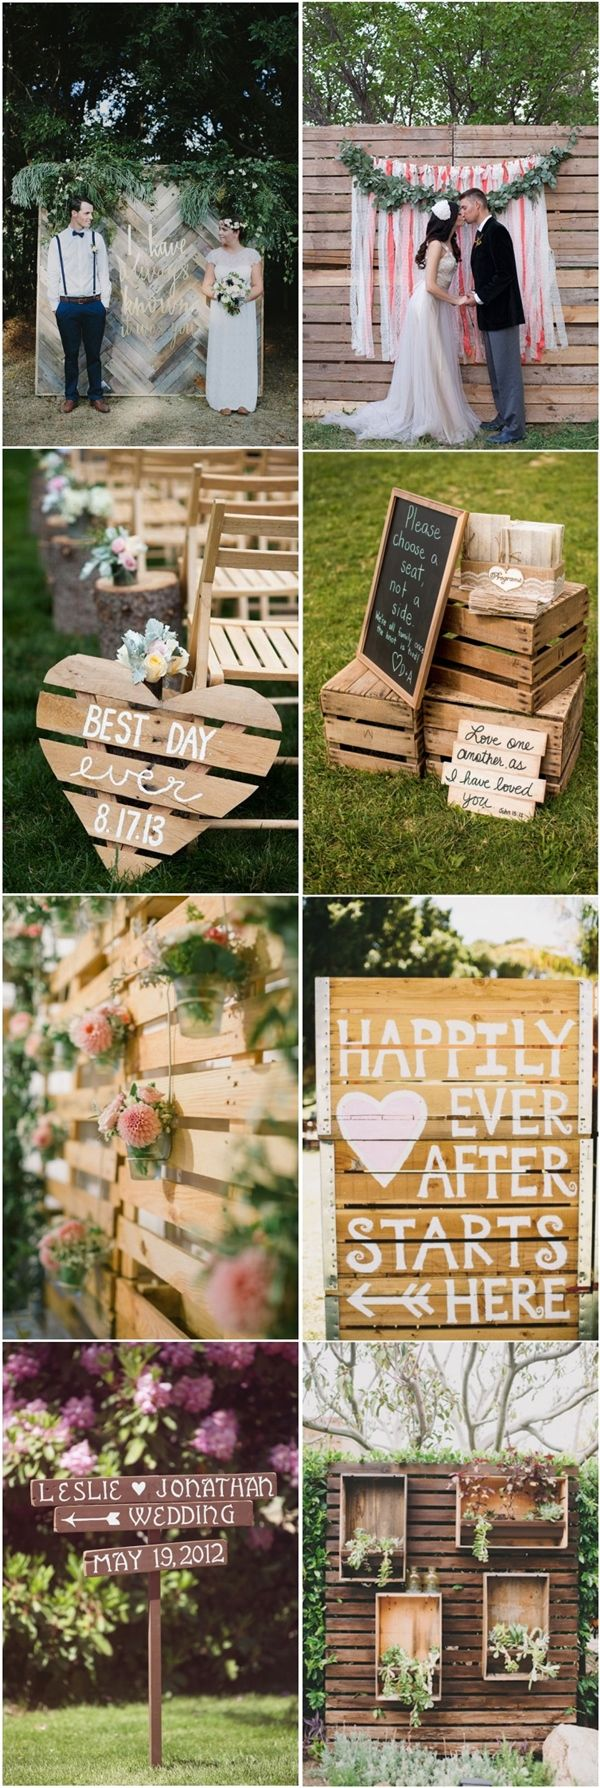 Pallet wedding decor ideas  rustic country wood pallets wedding decor ideas  Deer Pearl Flowers